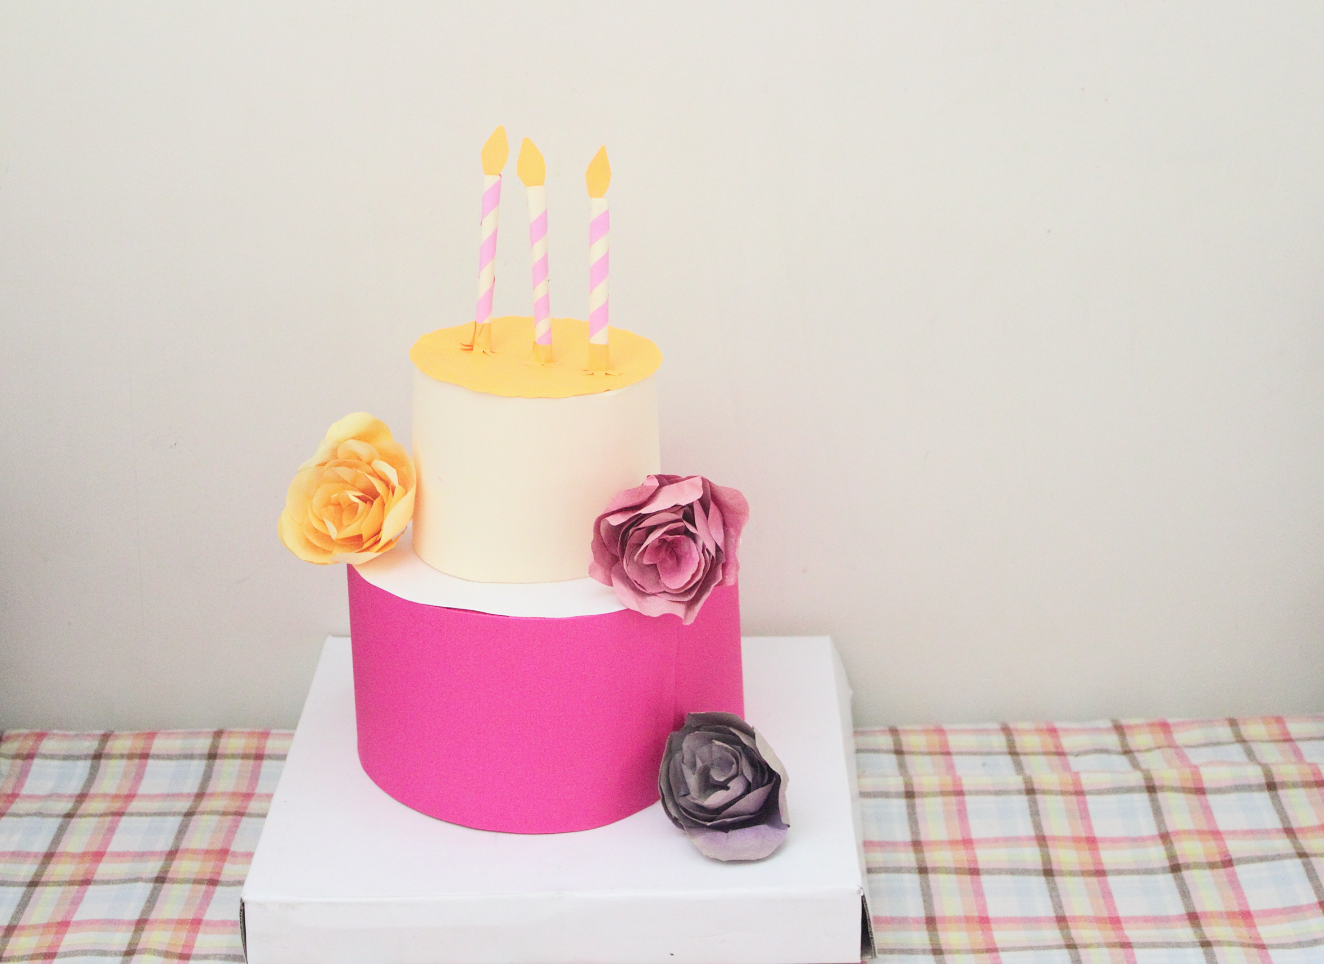 paper crafted cake with paper roses